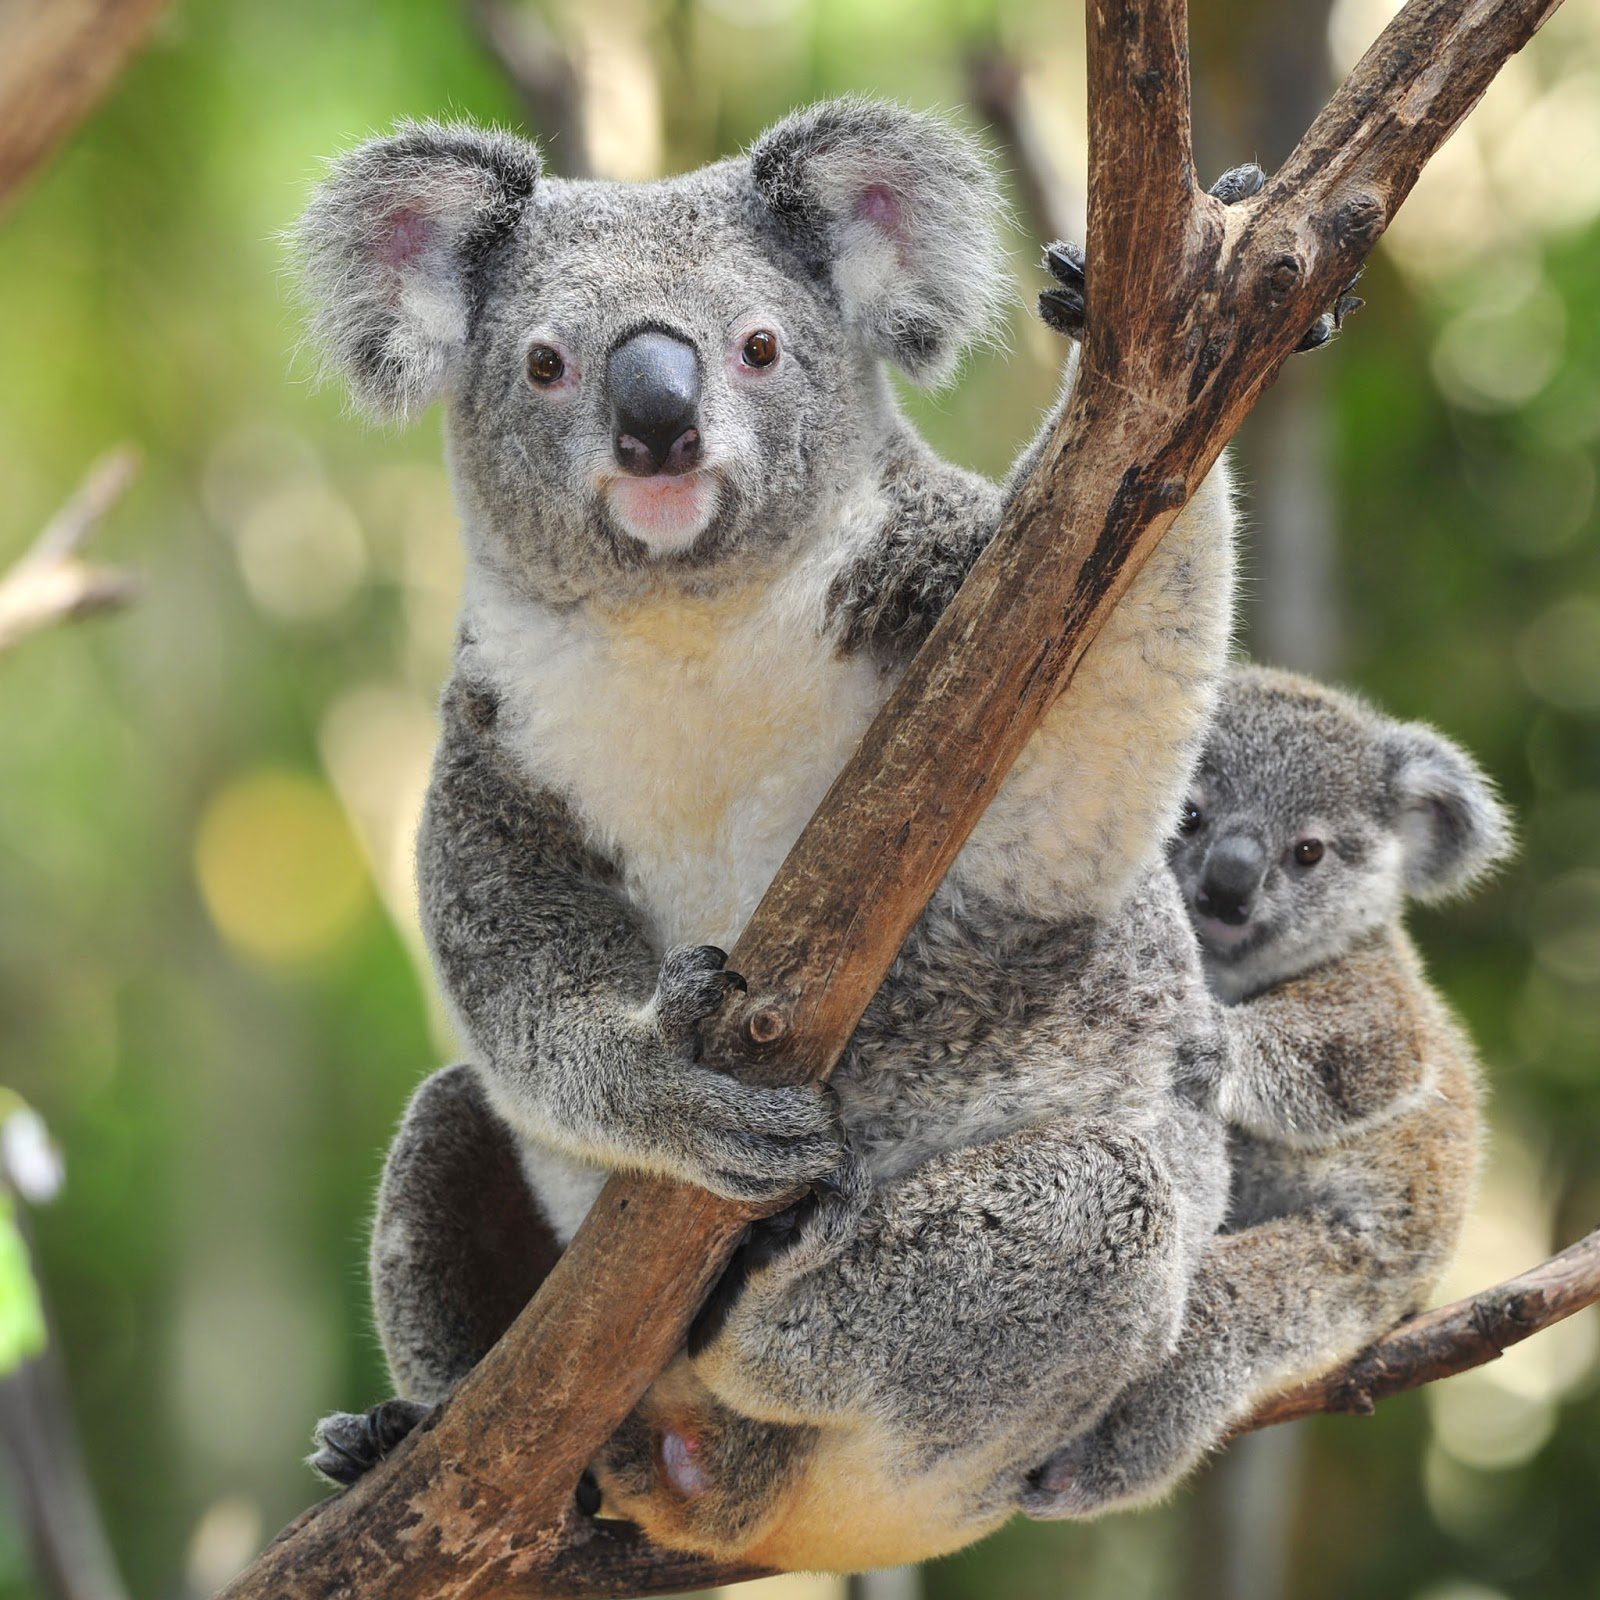 koala bears The situation has become so dire that researchers are working on a vaccine that would protect the koalas from contracting the std.